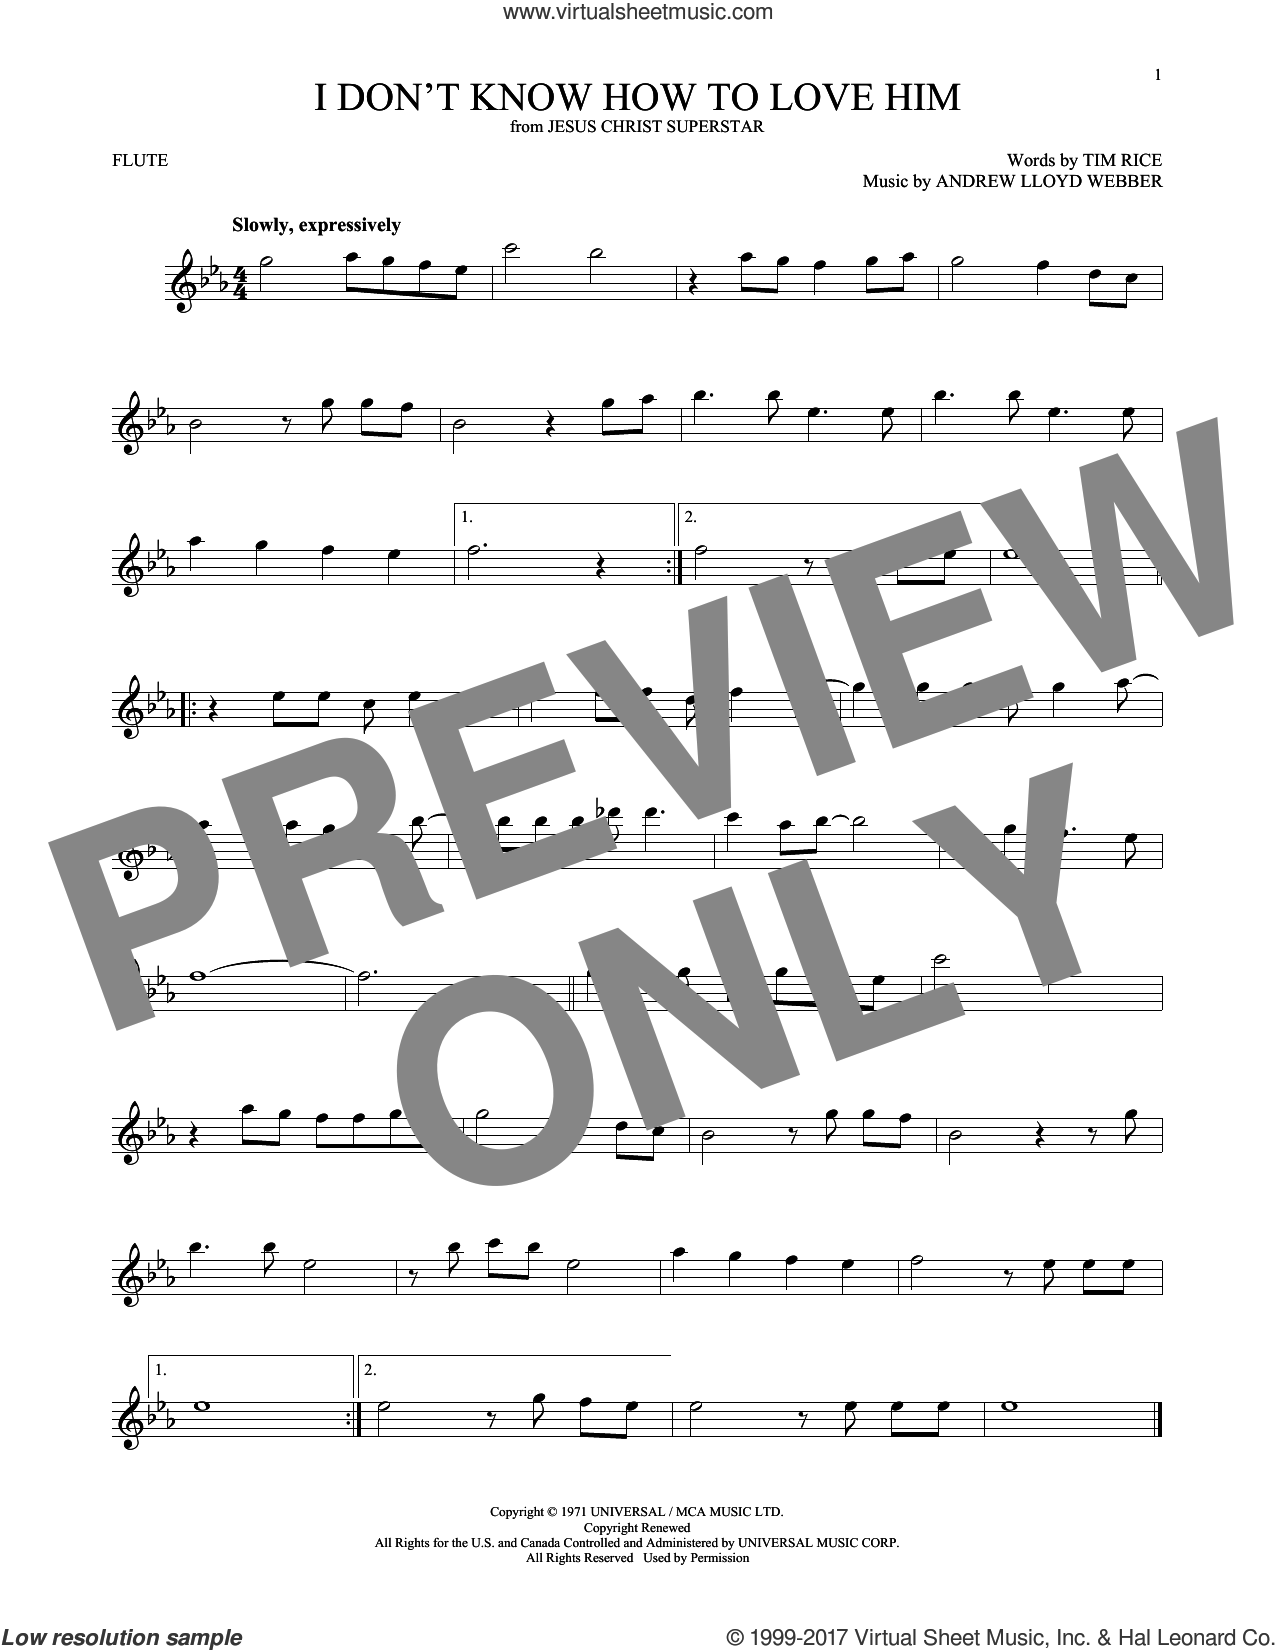 I Don't Know How To Love Him sheet music for flute solo by Andrew Lloyd Webber, Helen Reddy and Tim Rice, intermediate skill level